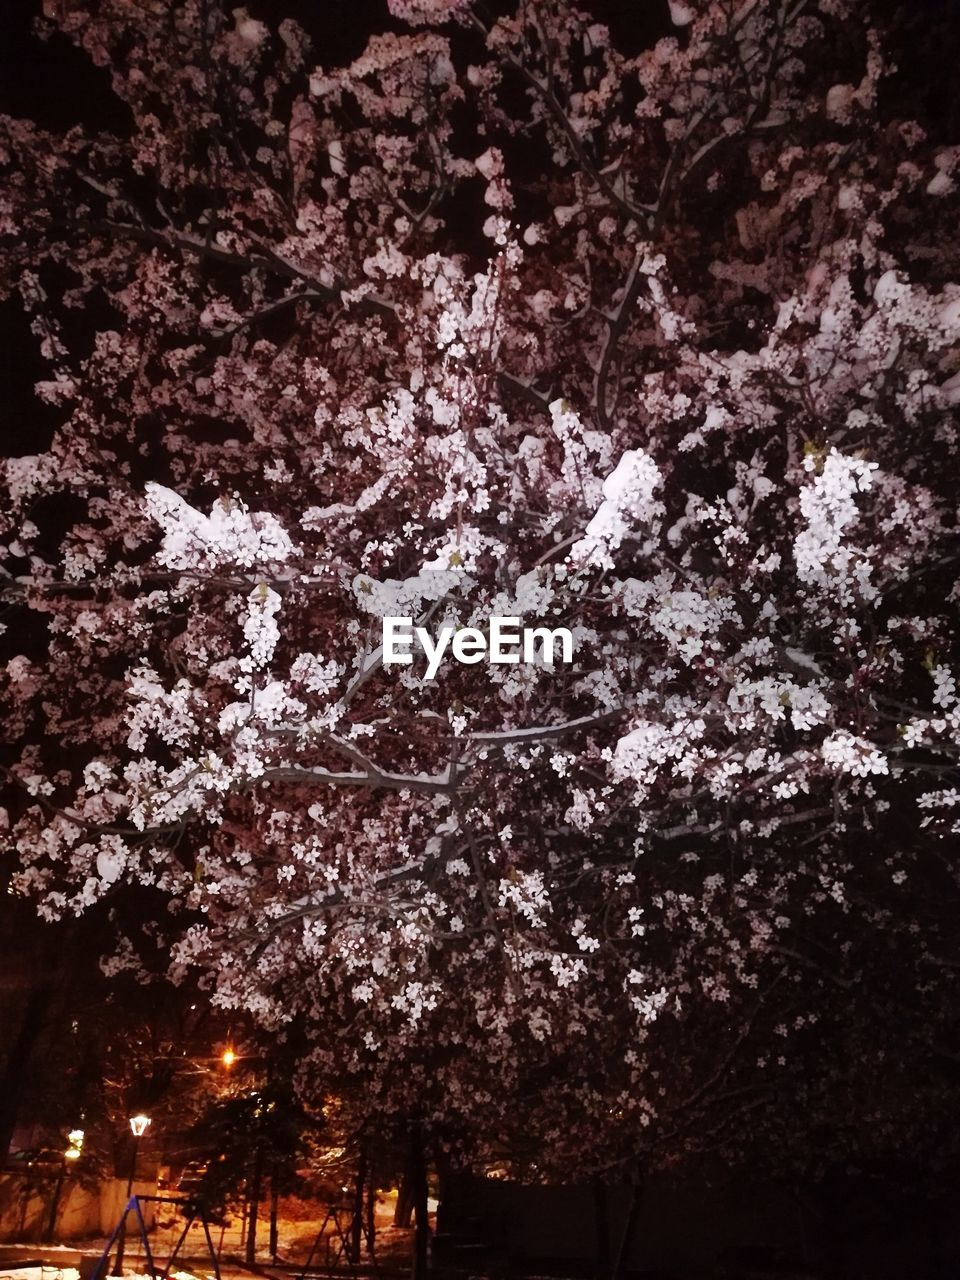 tree, plant, flower, flowering plant, growth, fragility, beauty in nature, blossom, freshness, nature, no people, springtime, cherry blossom, branch, low angle view, vulnerability, cherry tree, outdoors, night, pink color